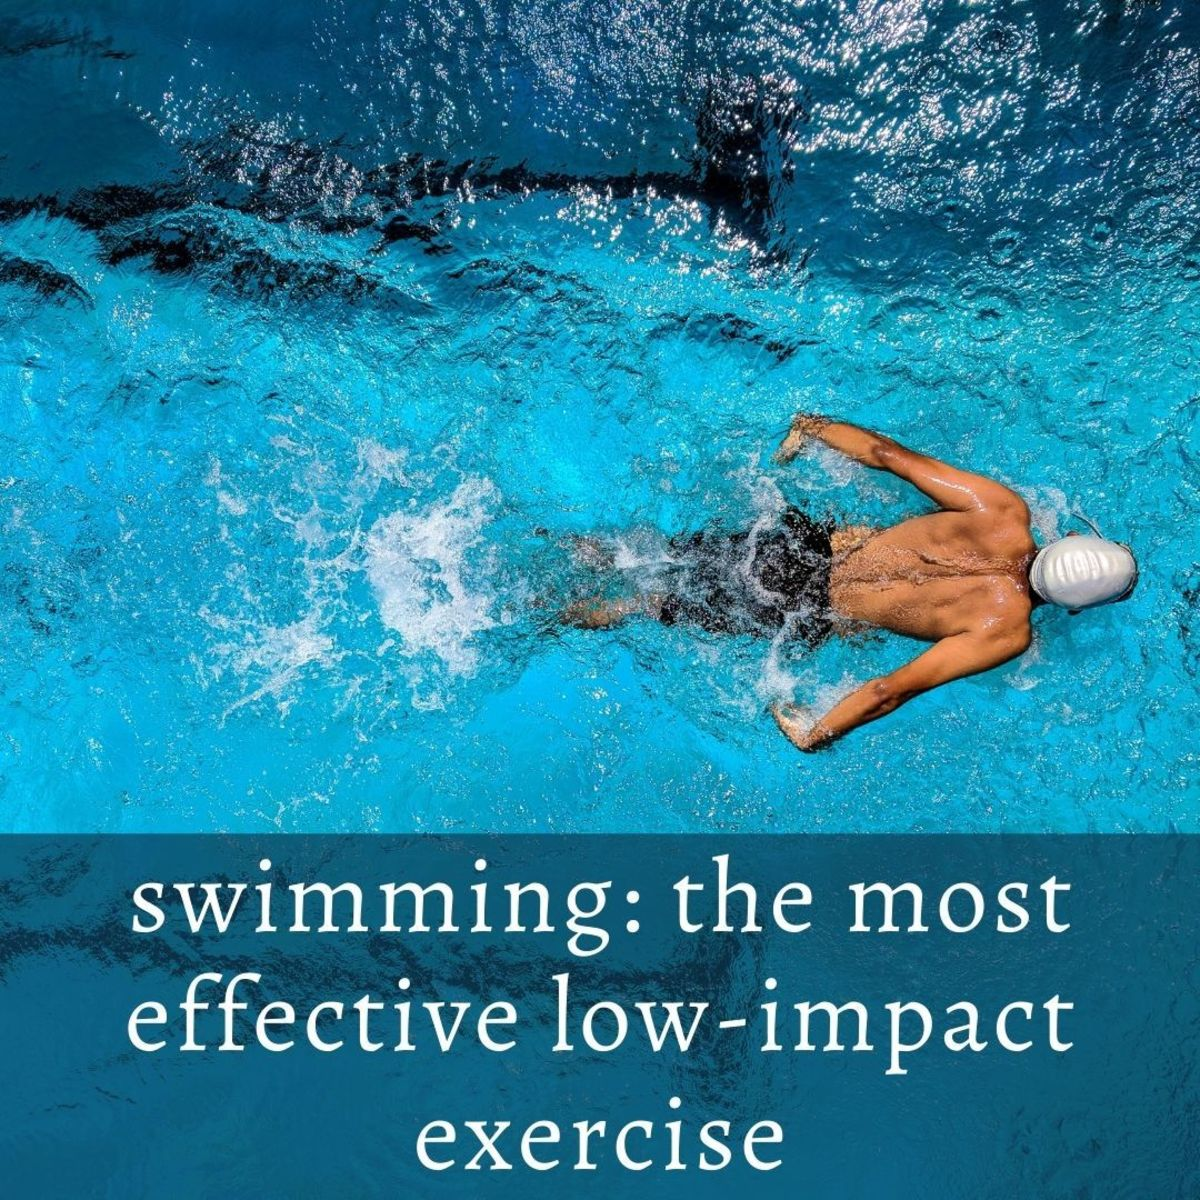 Swimming is the most effective low impact exercise, suitable for people with bad knees